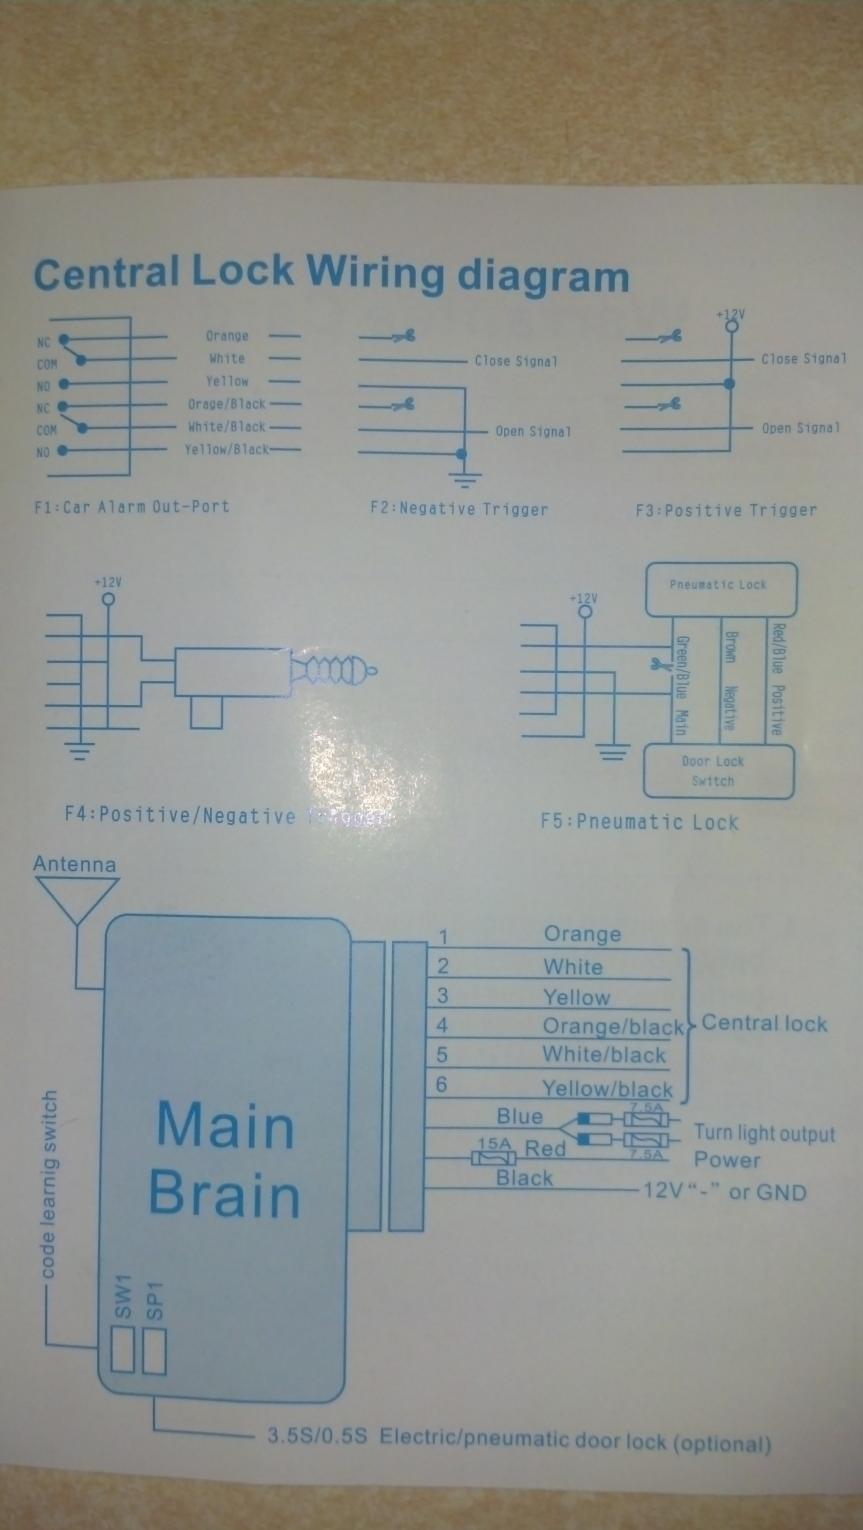 need help reading wiring diagram remote entry install on  need help reading wiring diagram remote entry install on 13 base 6mt 2013